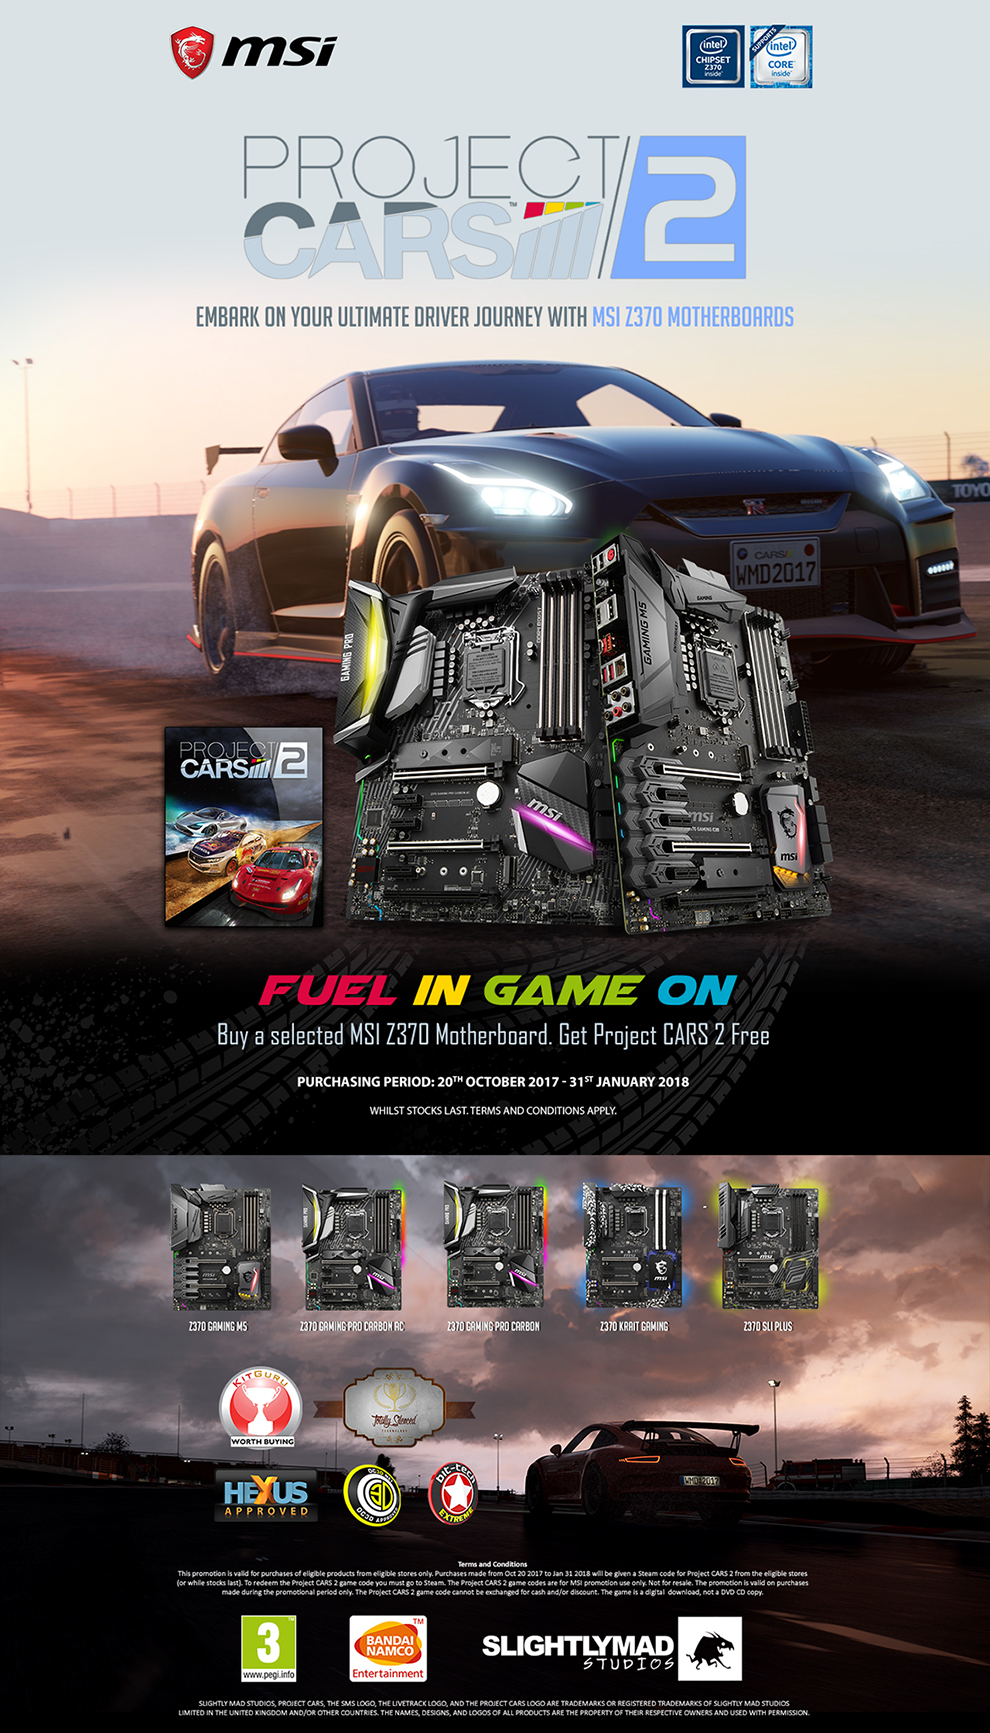 MSI Project Cars 2 Promotion at Novatech